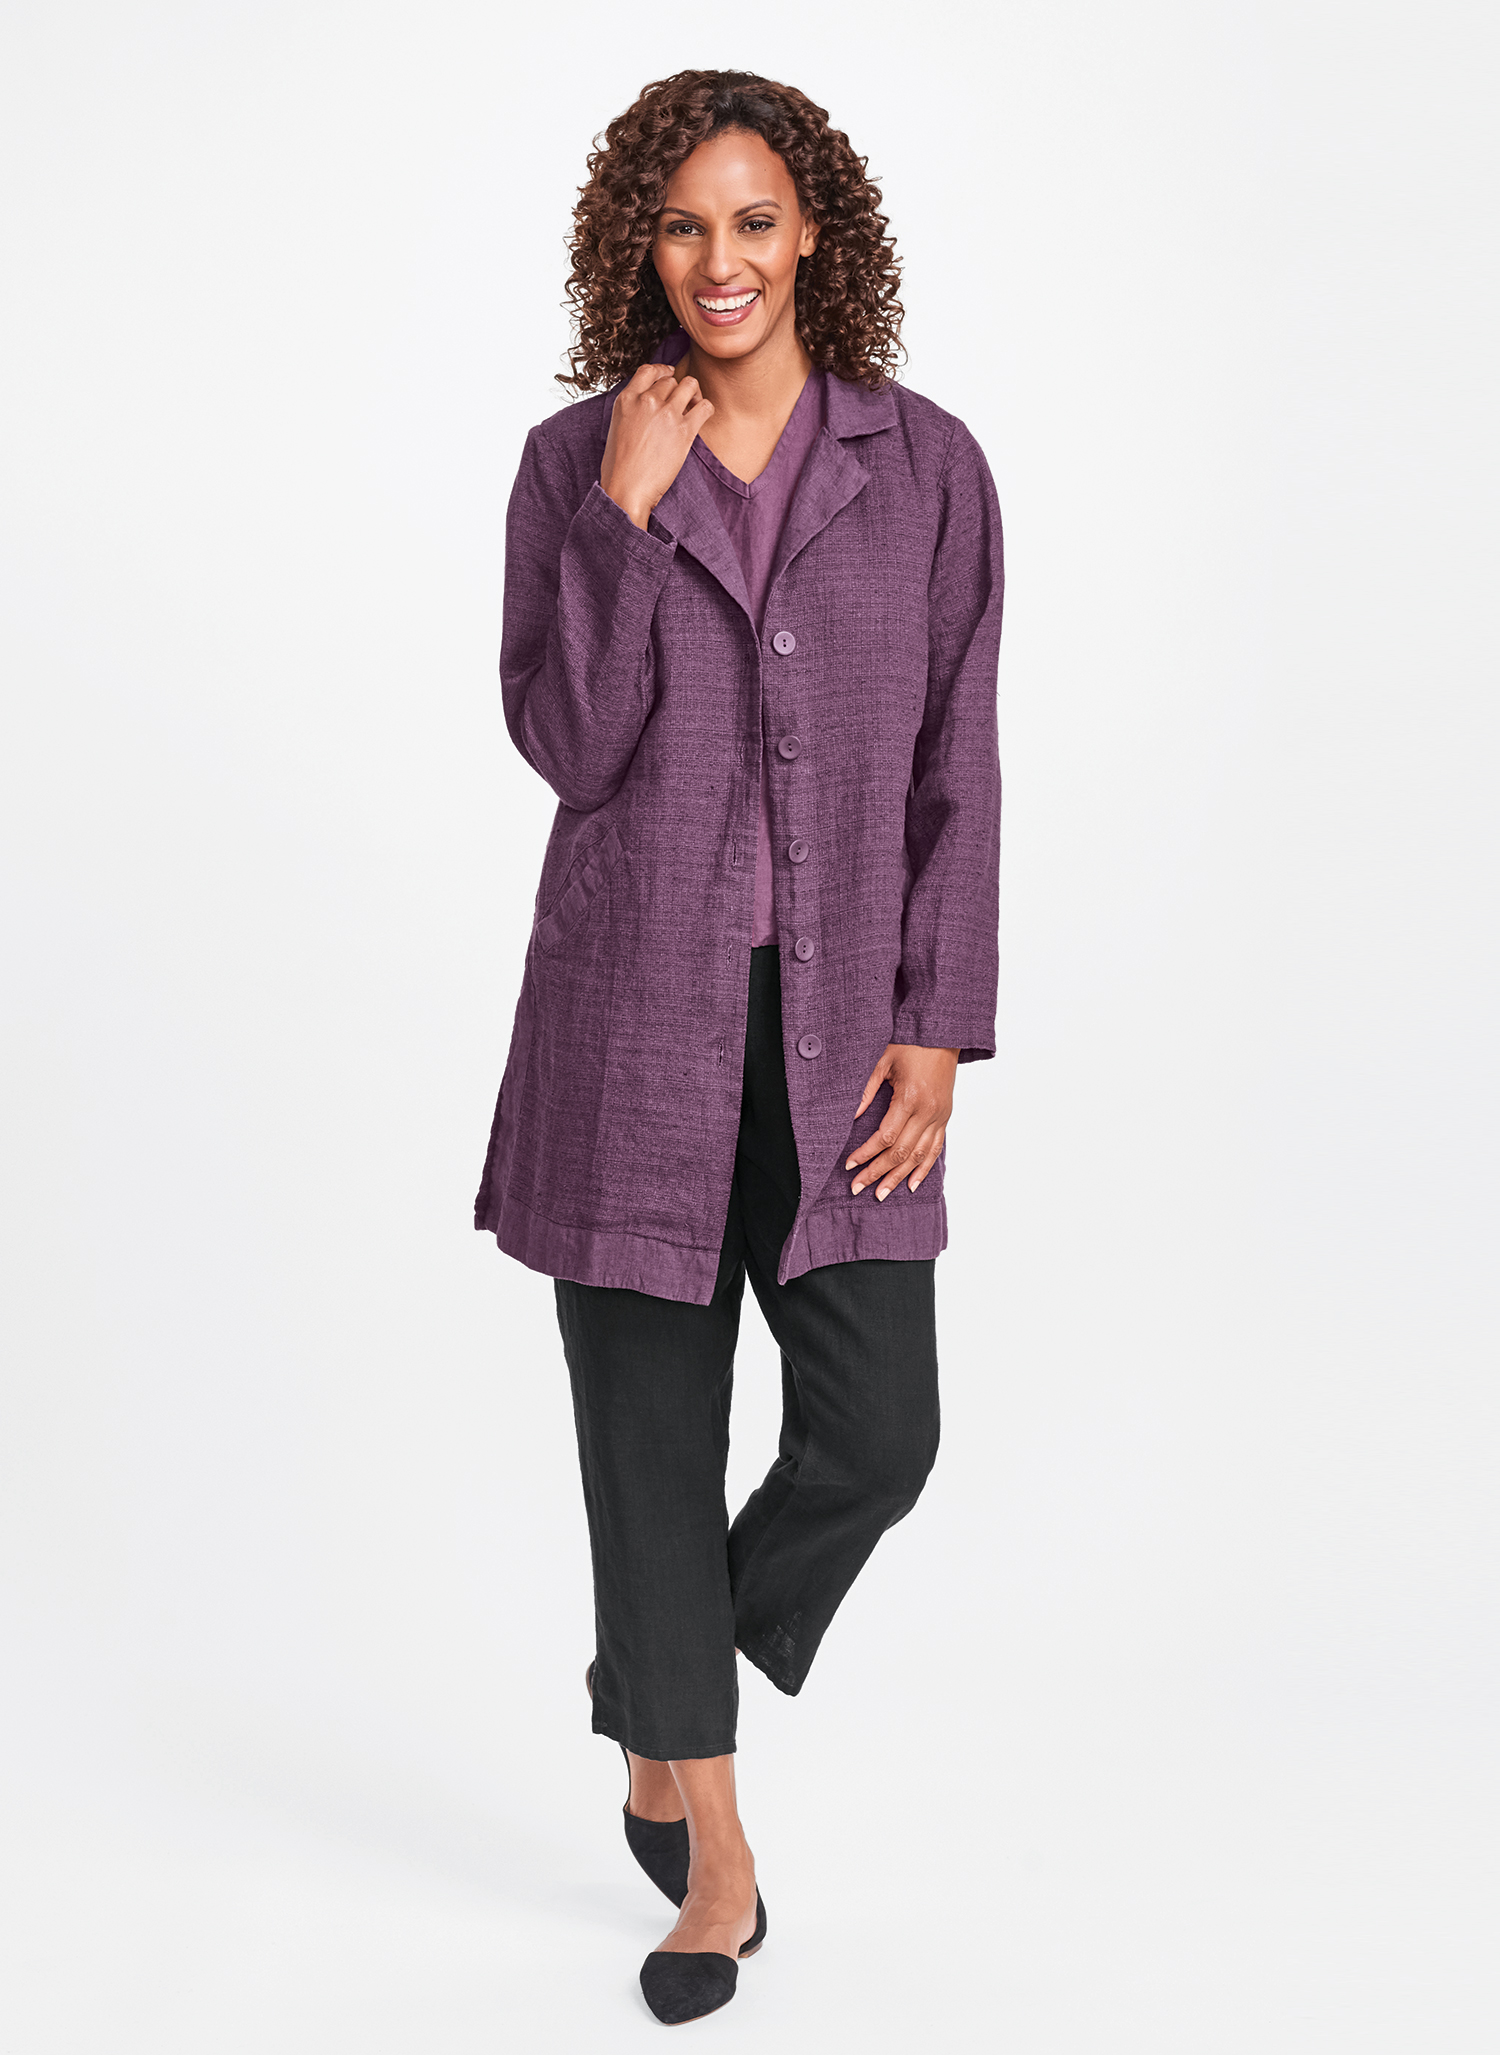 FLAX Classics Two and Fall Traveler 2019